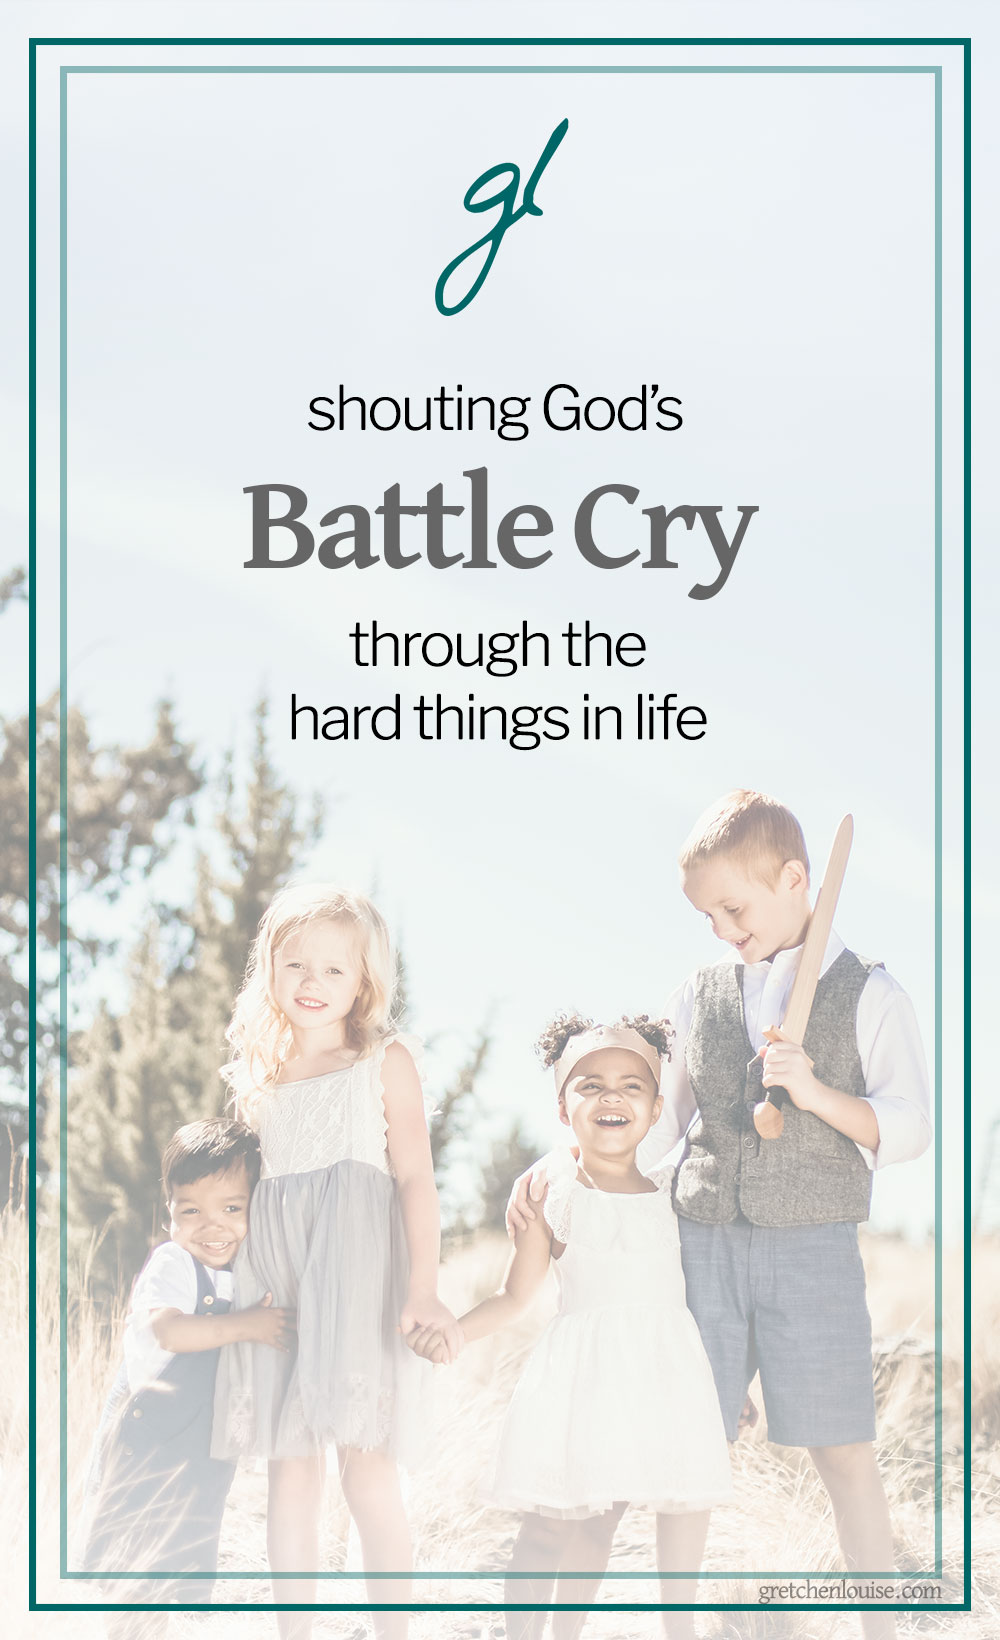 If you've enjoyed the story of Kayla Aimee's micro-preemie in Anchored or the adoption memoirs In a Sun-Scorched Land by Jennifer Ebenhack and Counting Grains of Sand by Natasha Metzler, you'll want to read Jordyn Glaser's Battle Cry. via @GretLouise